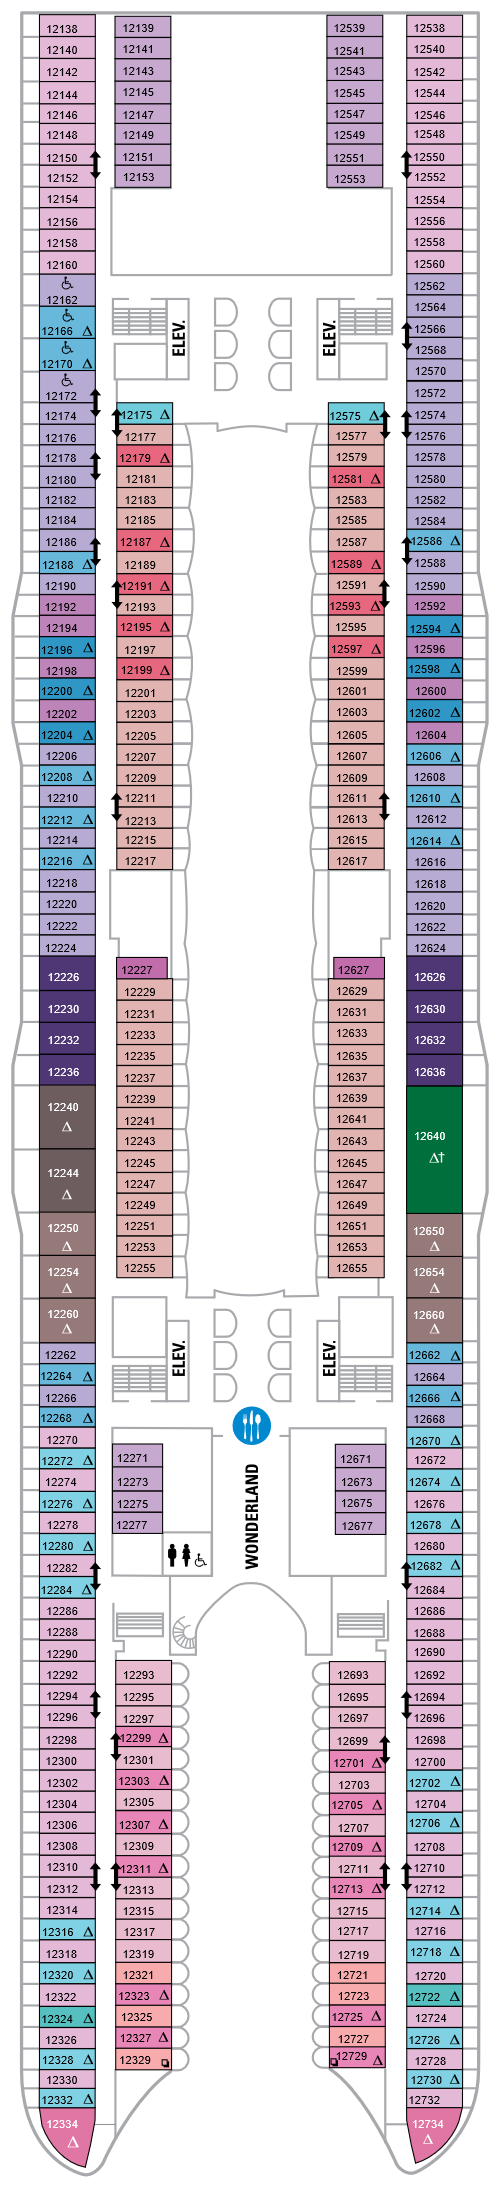 Symphony Of The Seas Deck 12 layout